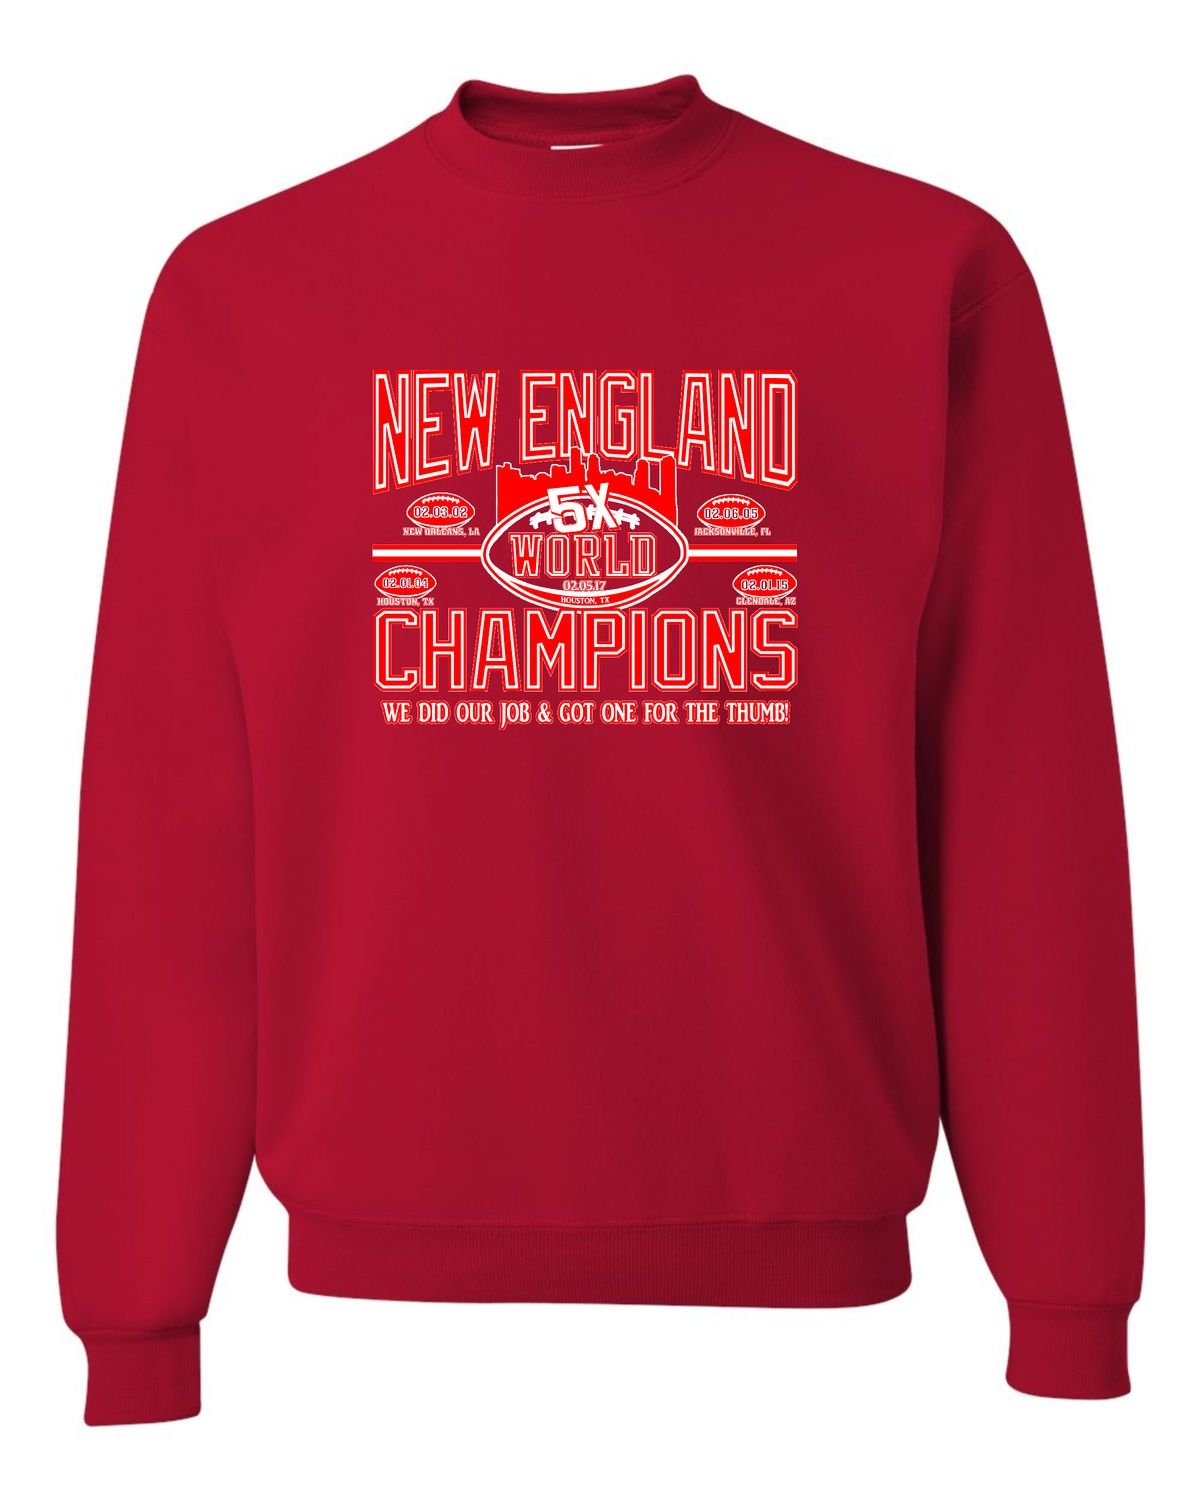 Go All Out Adult New England World Champions Football Sweatshirt Crewneck